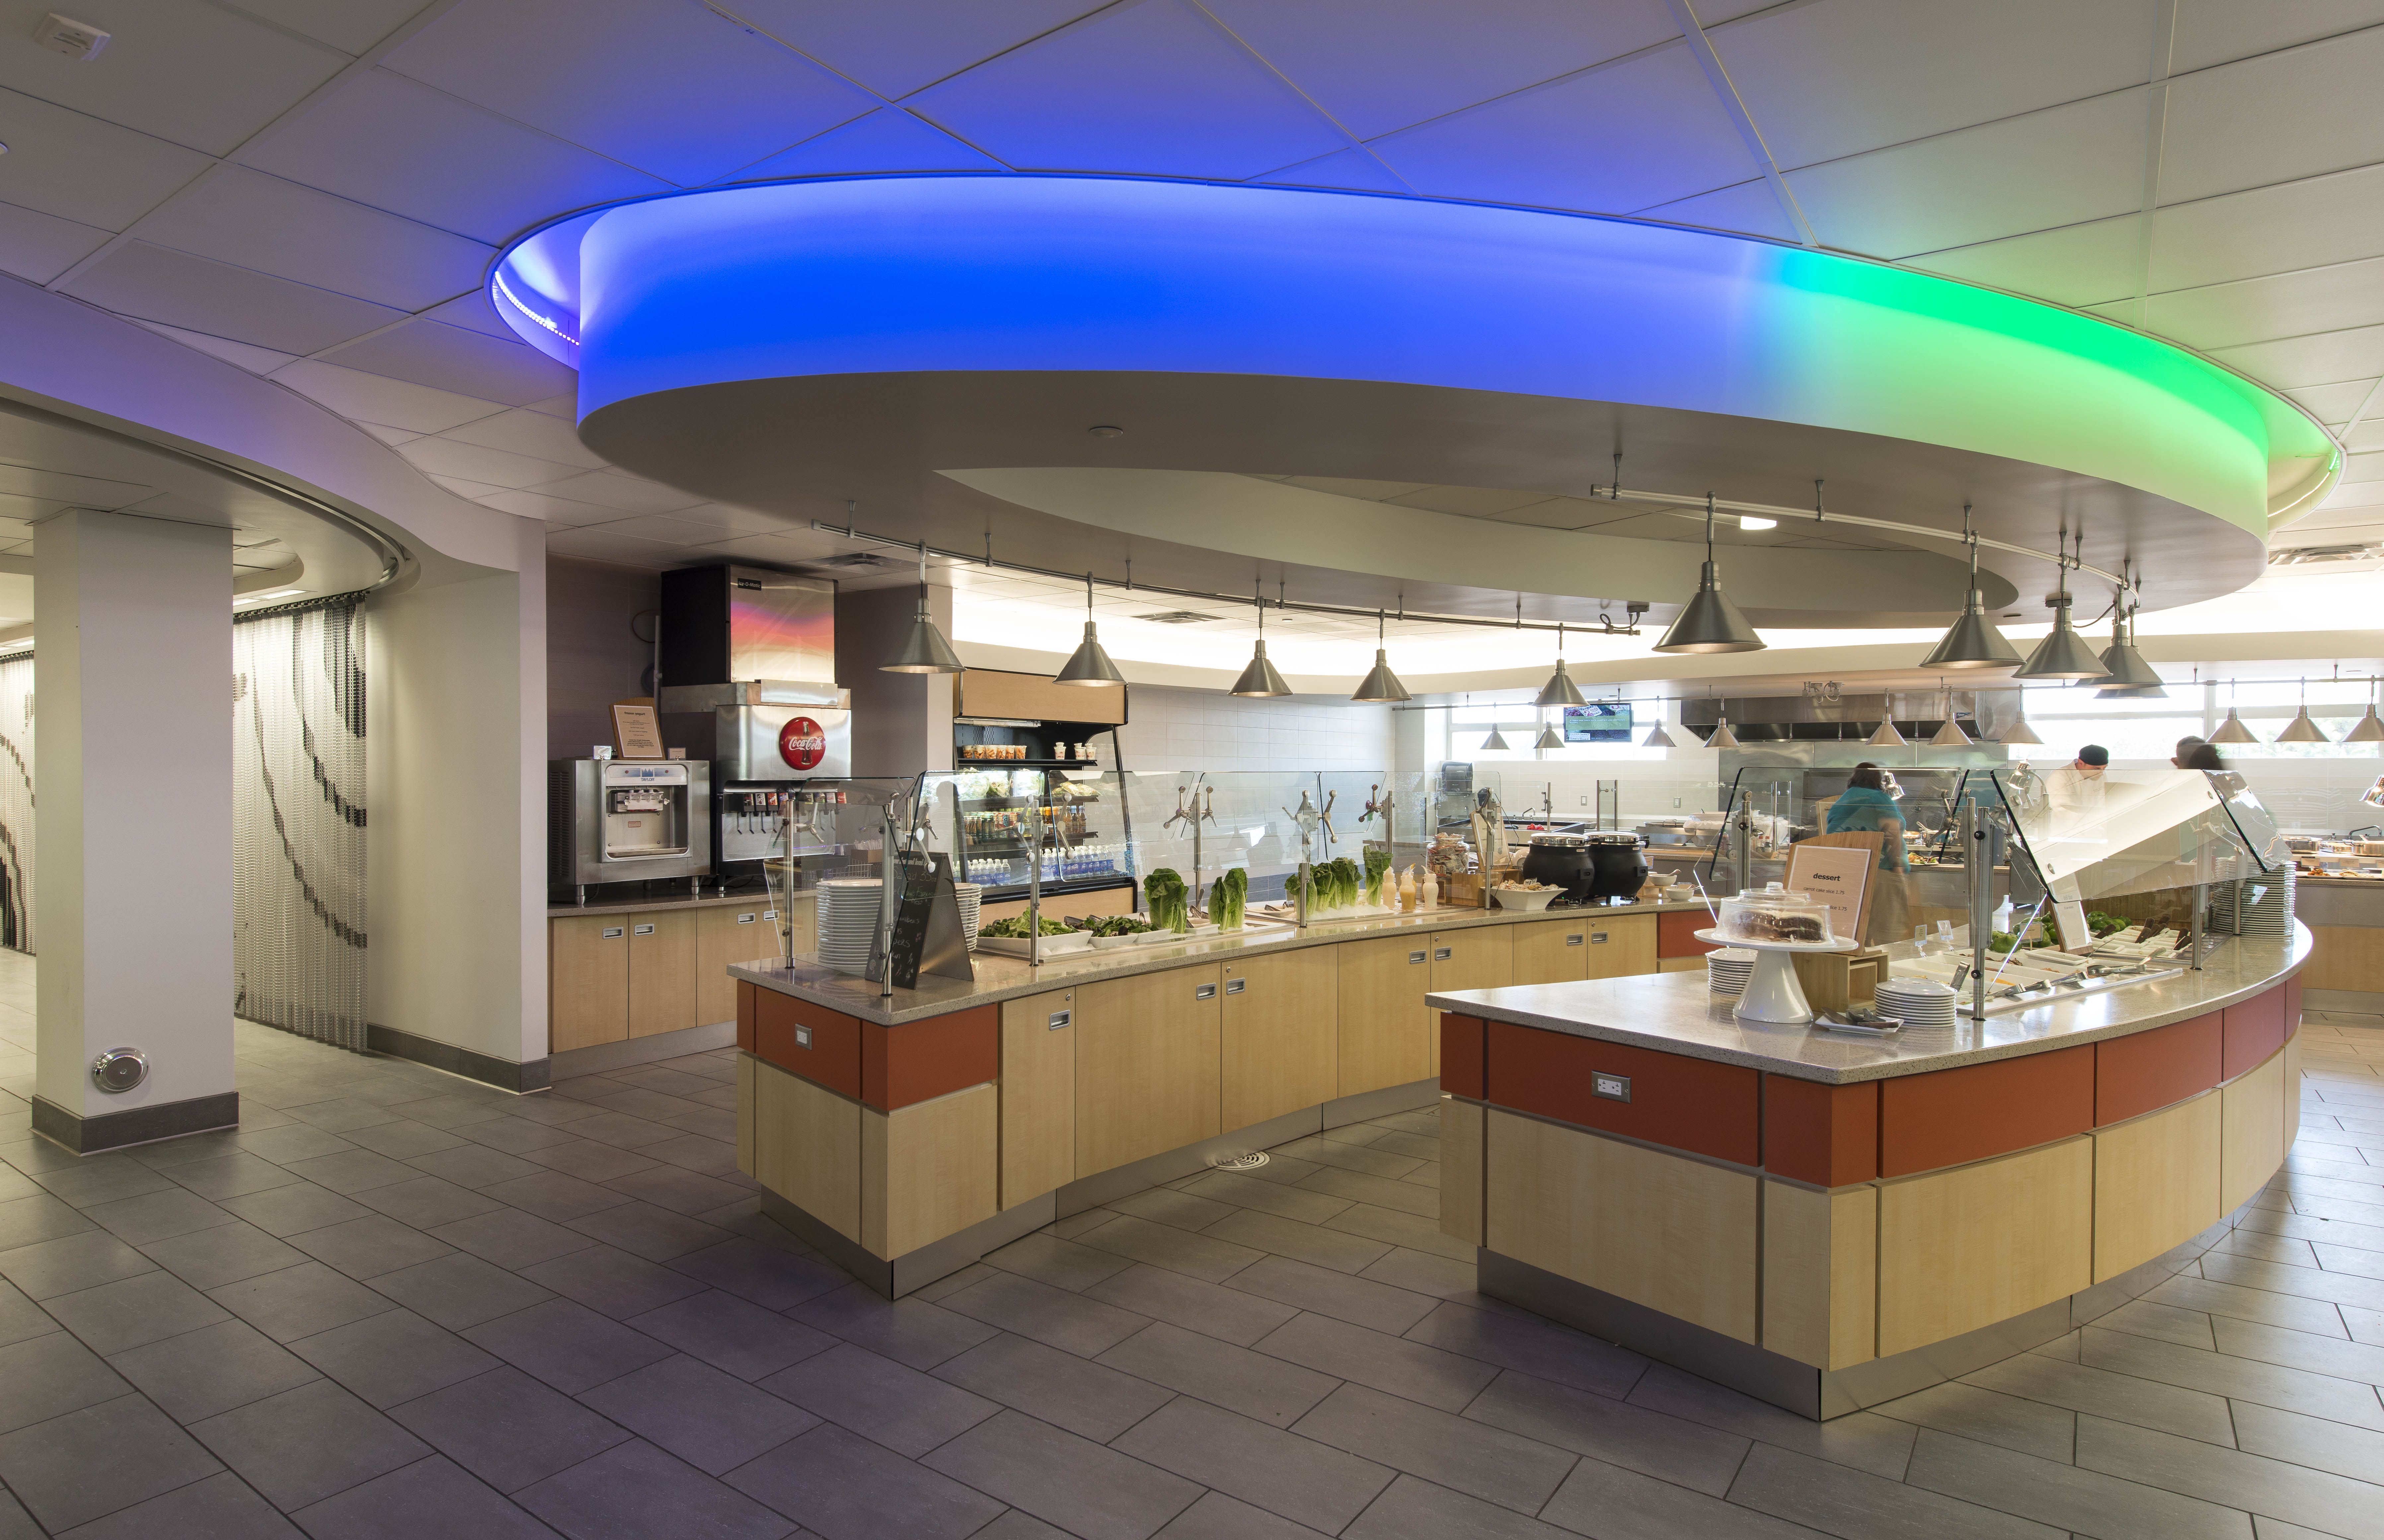 eBay's PayPal call center in Chandler, AZ. | Sustainable Building ...